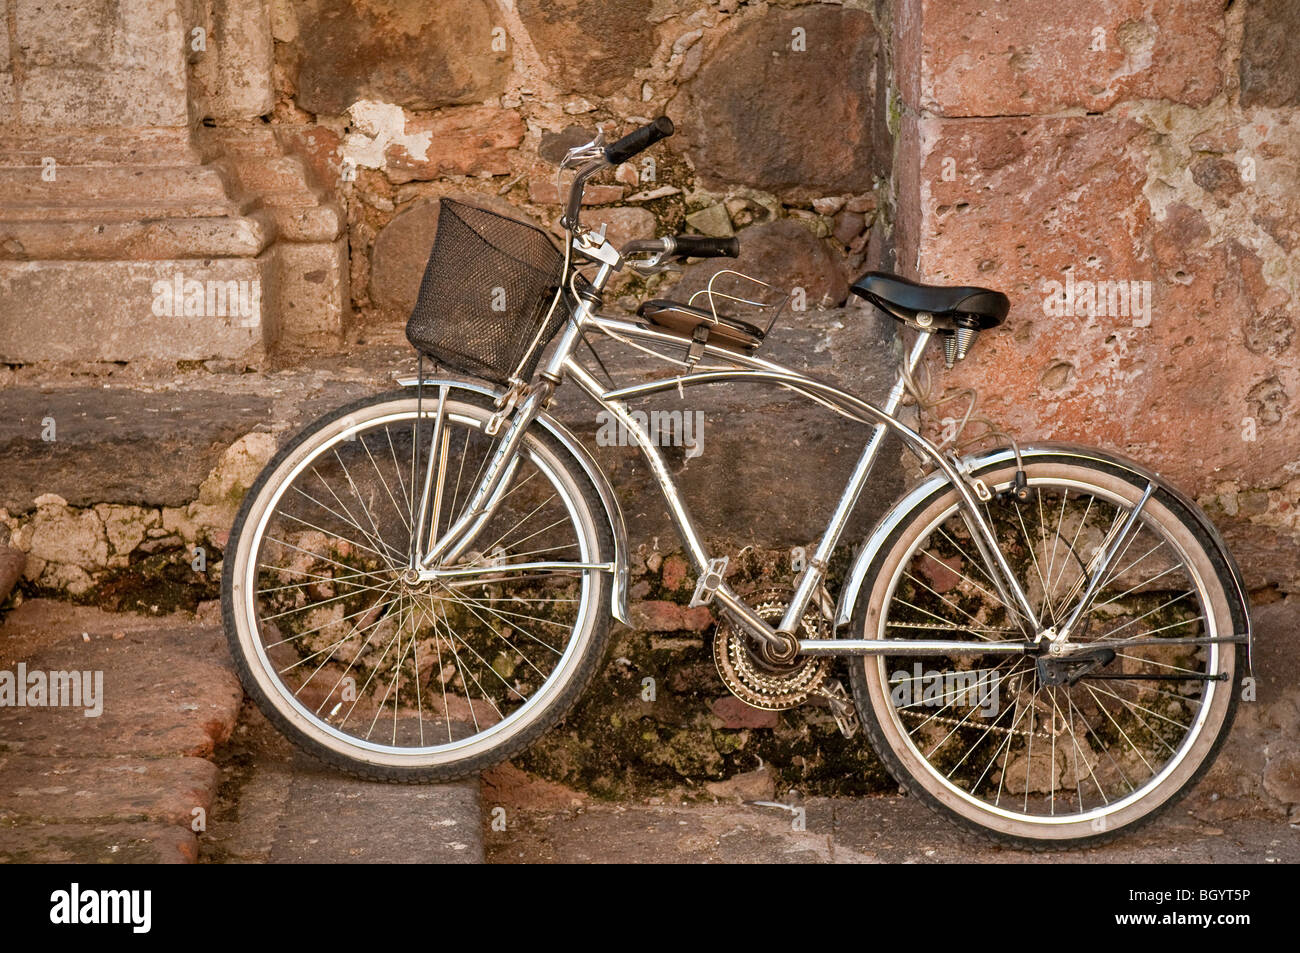 Chrome bicycle against rock wall of church in the town of Tequila, Jalisco, Mexico. - Stock Image